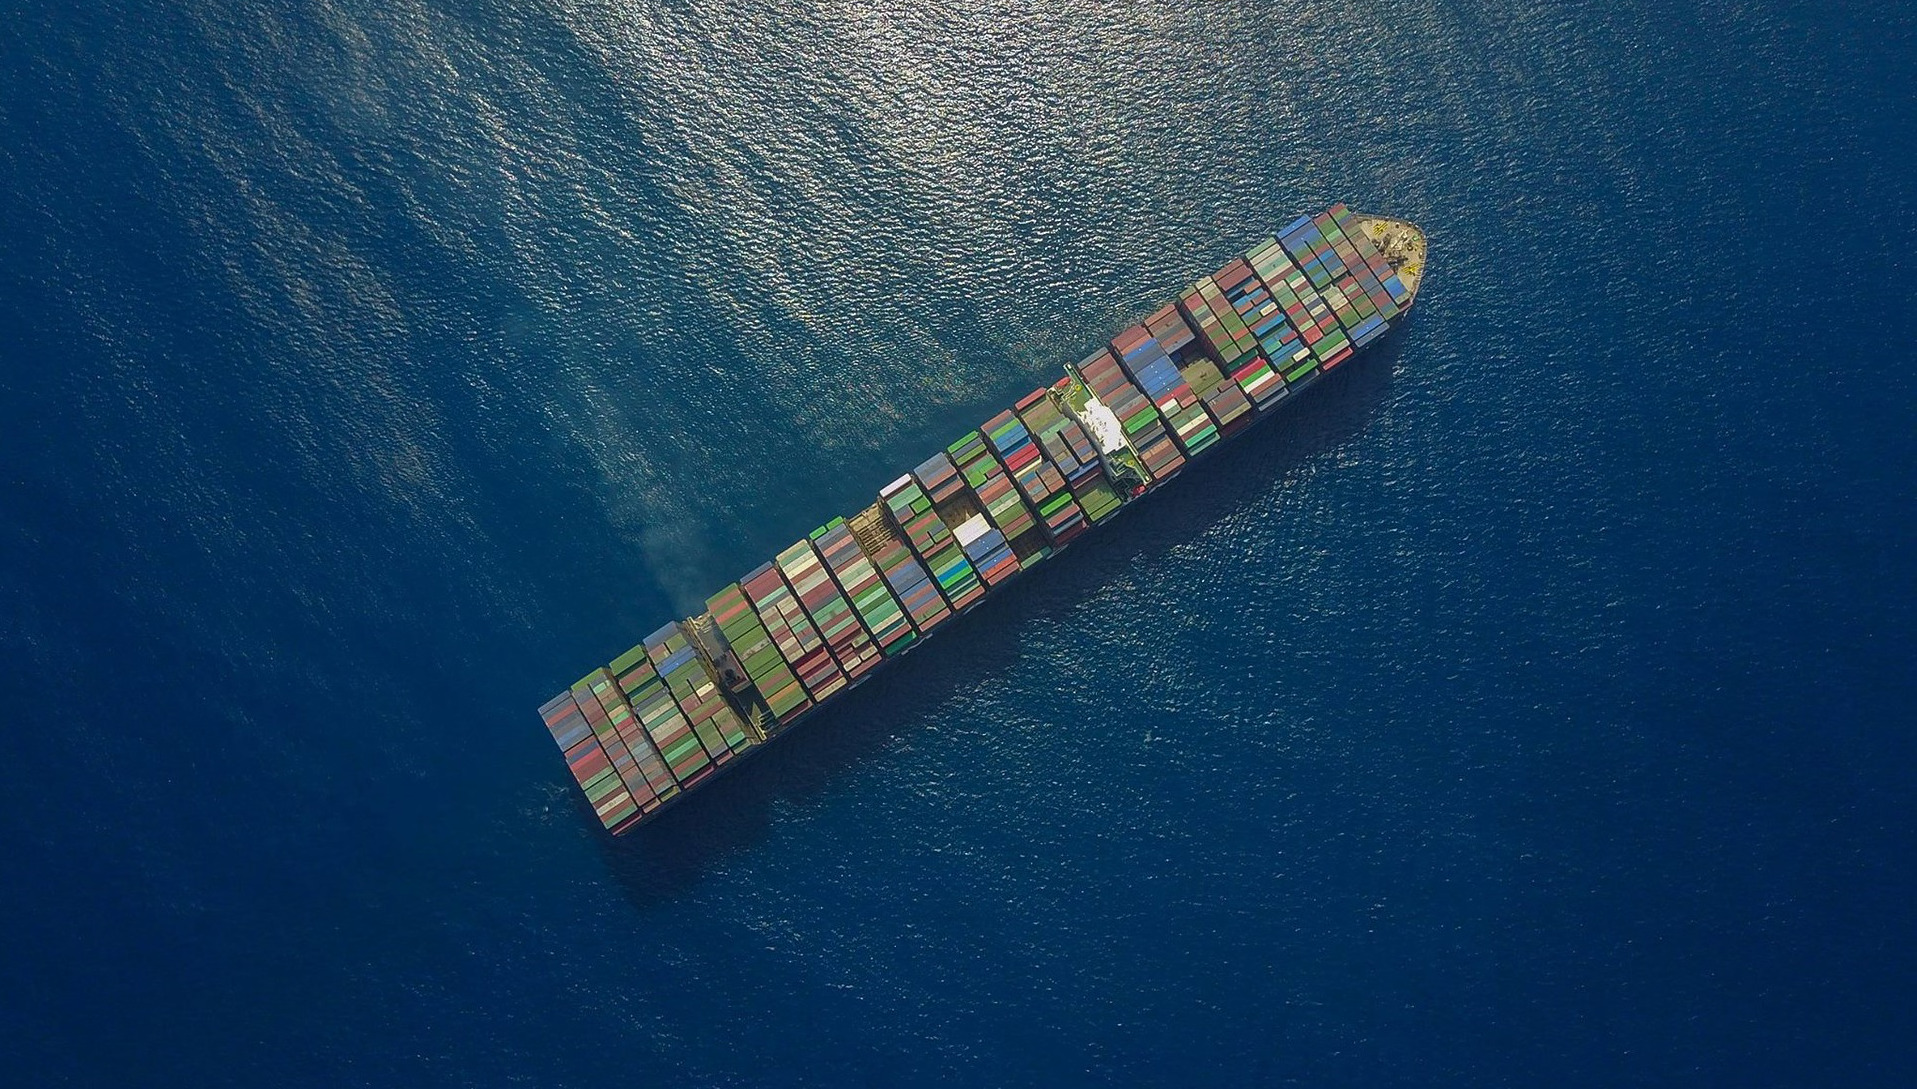 container-ship-2856899_1920.jpg